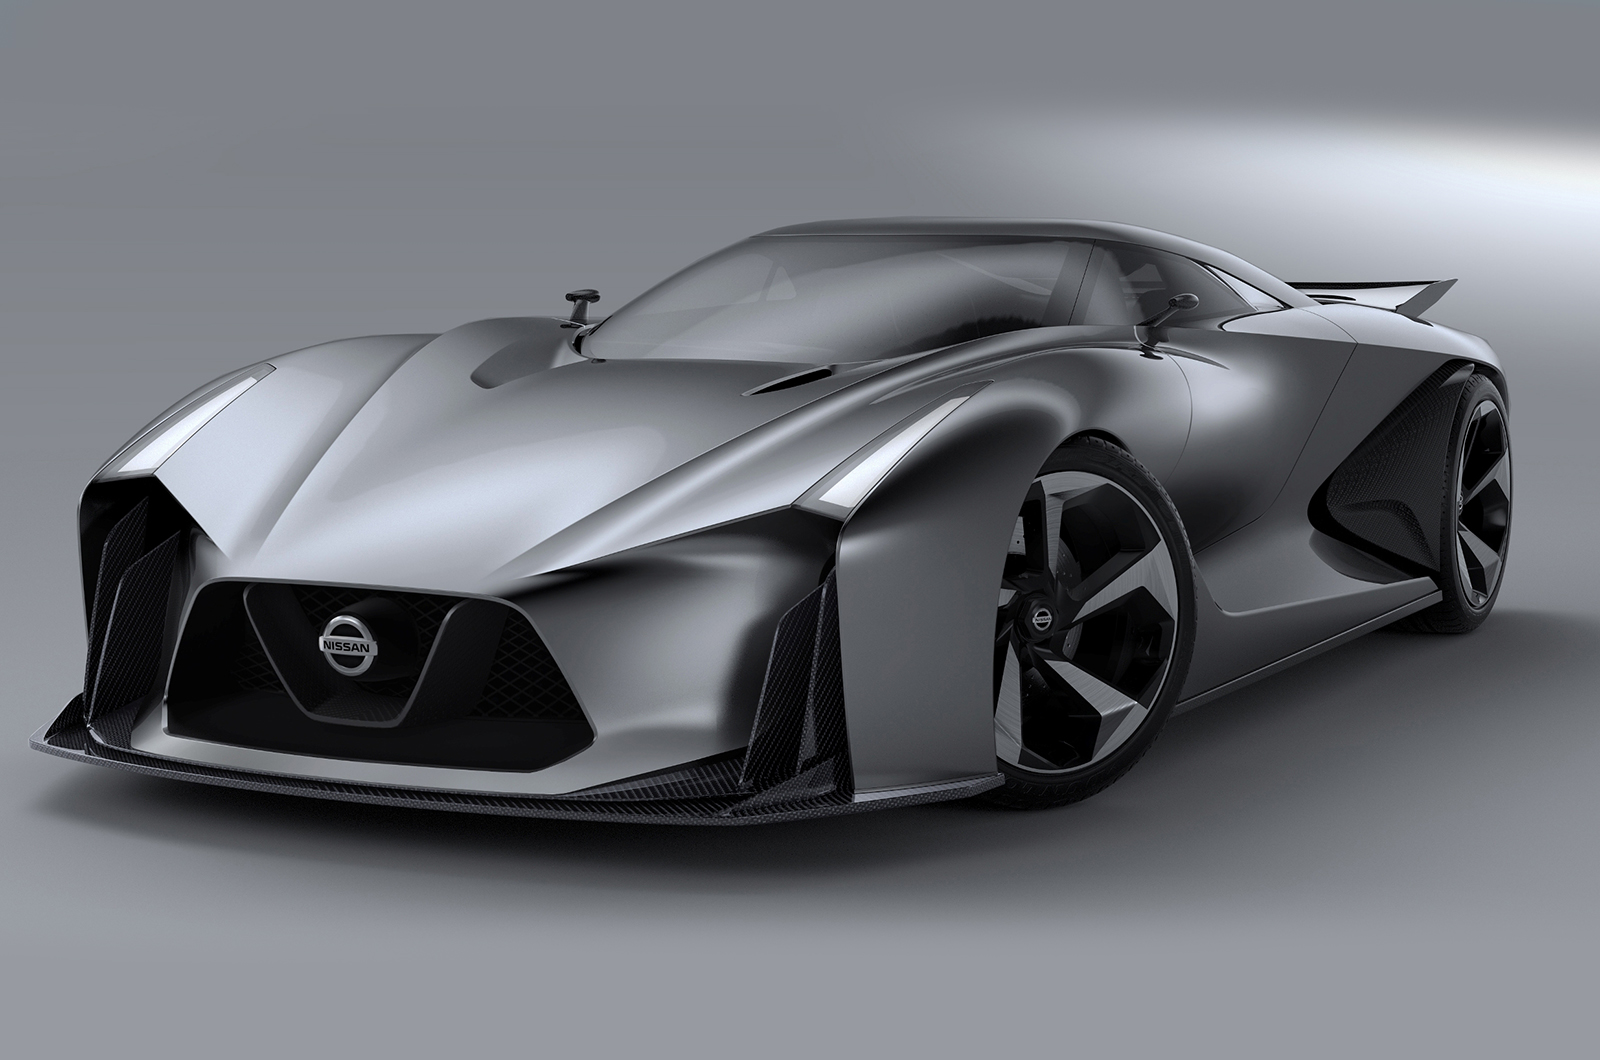 One Seater Car >> Nissan GTR 2020 Concept | MyLife